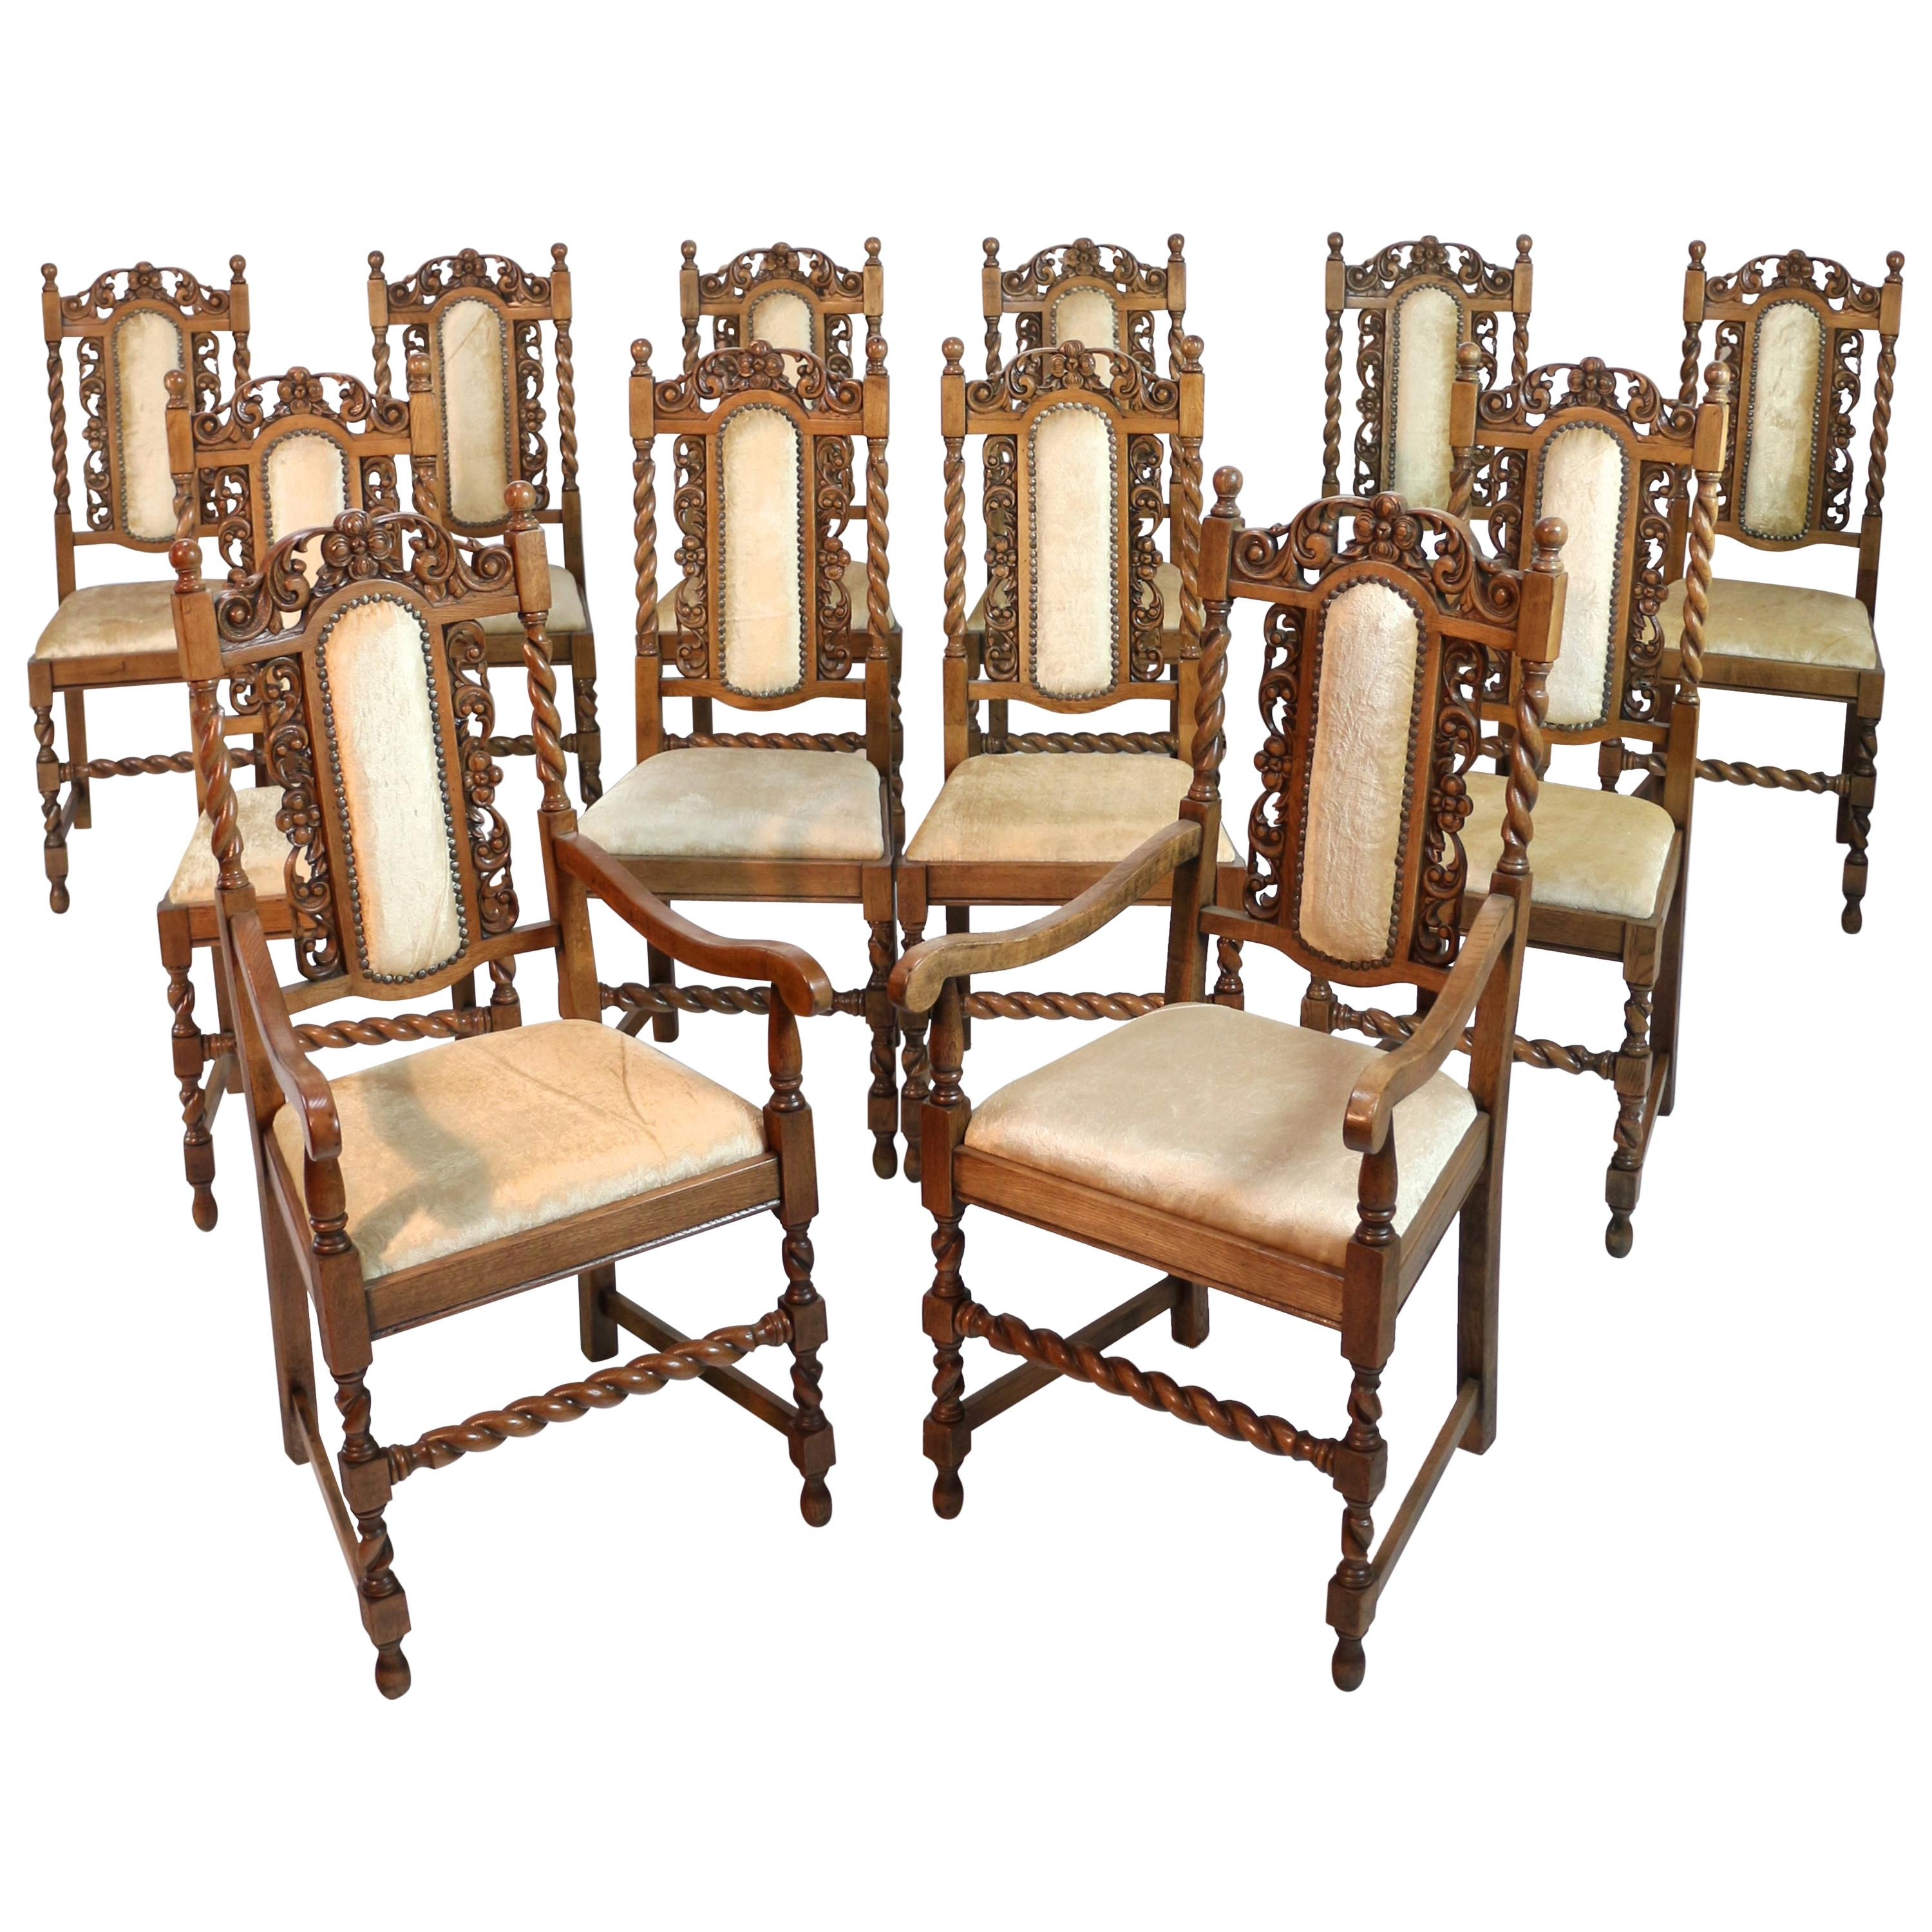 Set Of 12 Antique Jacobean Revival Carved Oak Barley Twist Dining Chairs